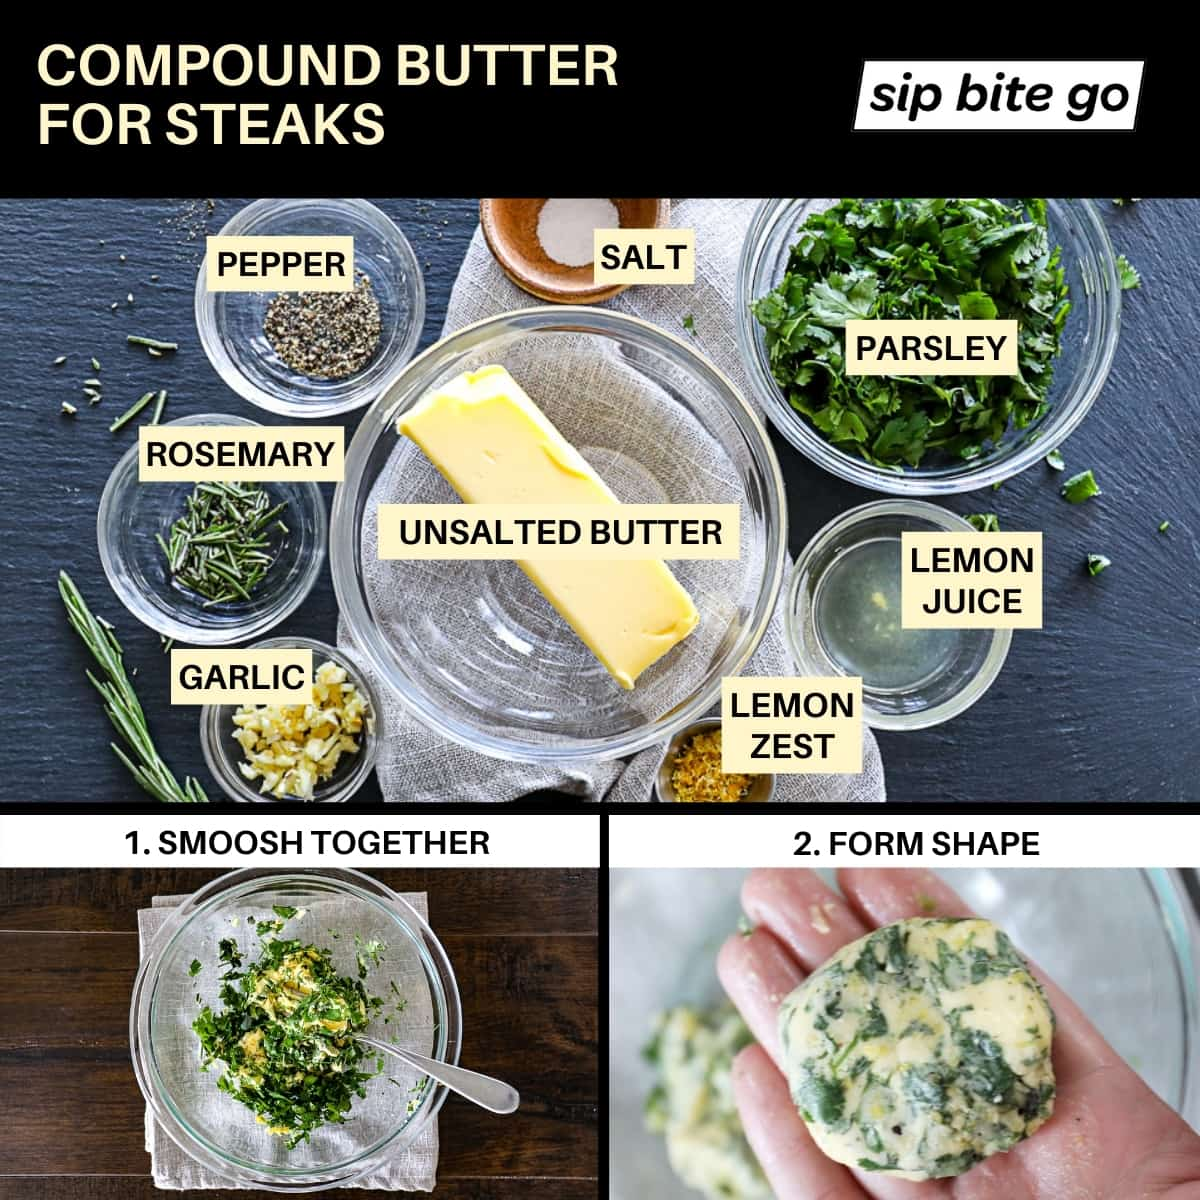 Diagram showing compound butter ingredients for steaks cooked in the air fryer with process shots of forming compound butter log patties.